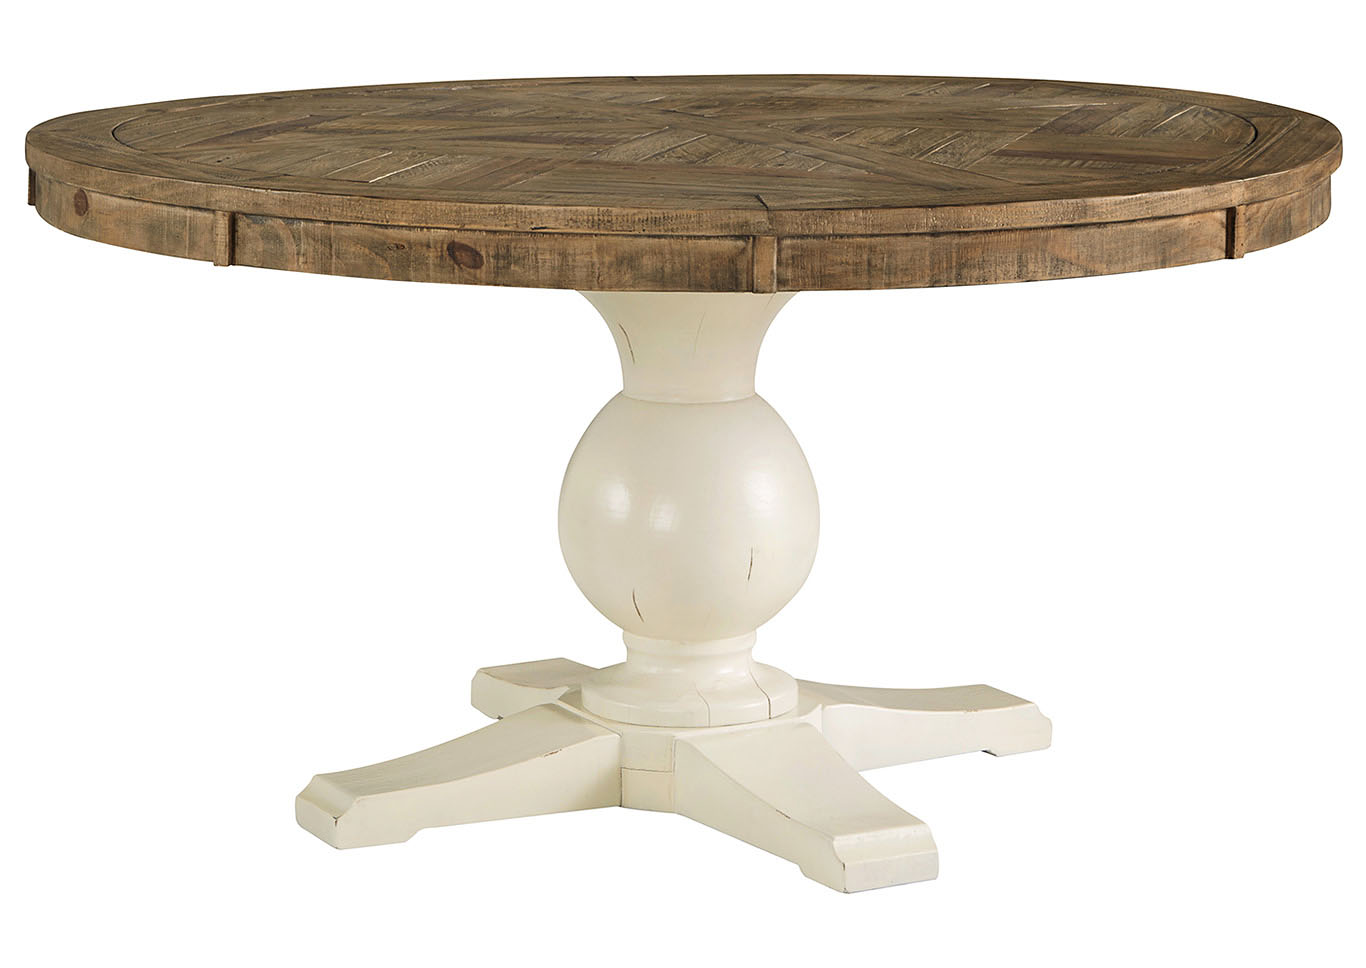 Gorees Furniture Opelika AL Grindleburg WhiteLight Brown Round - White and brown round dining table